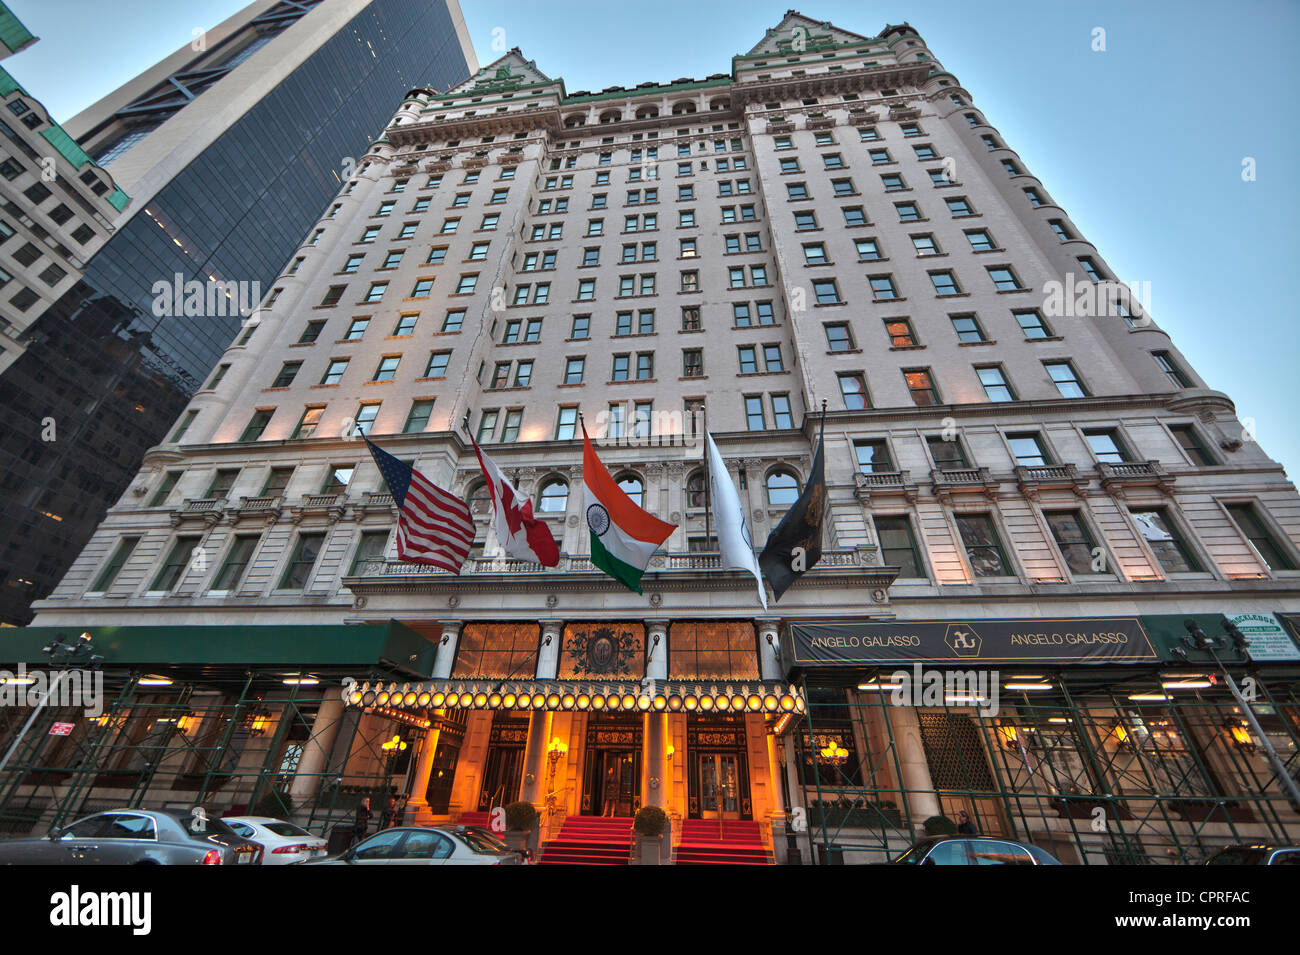 The plaza hotel owned by fairmont hotels in manhattan new for Top hotels in nyc